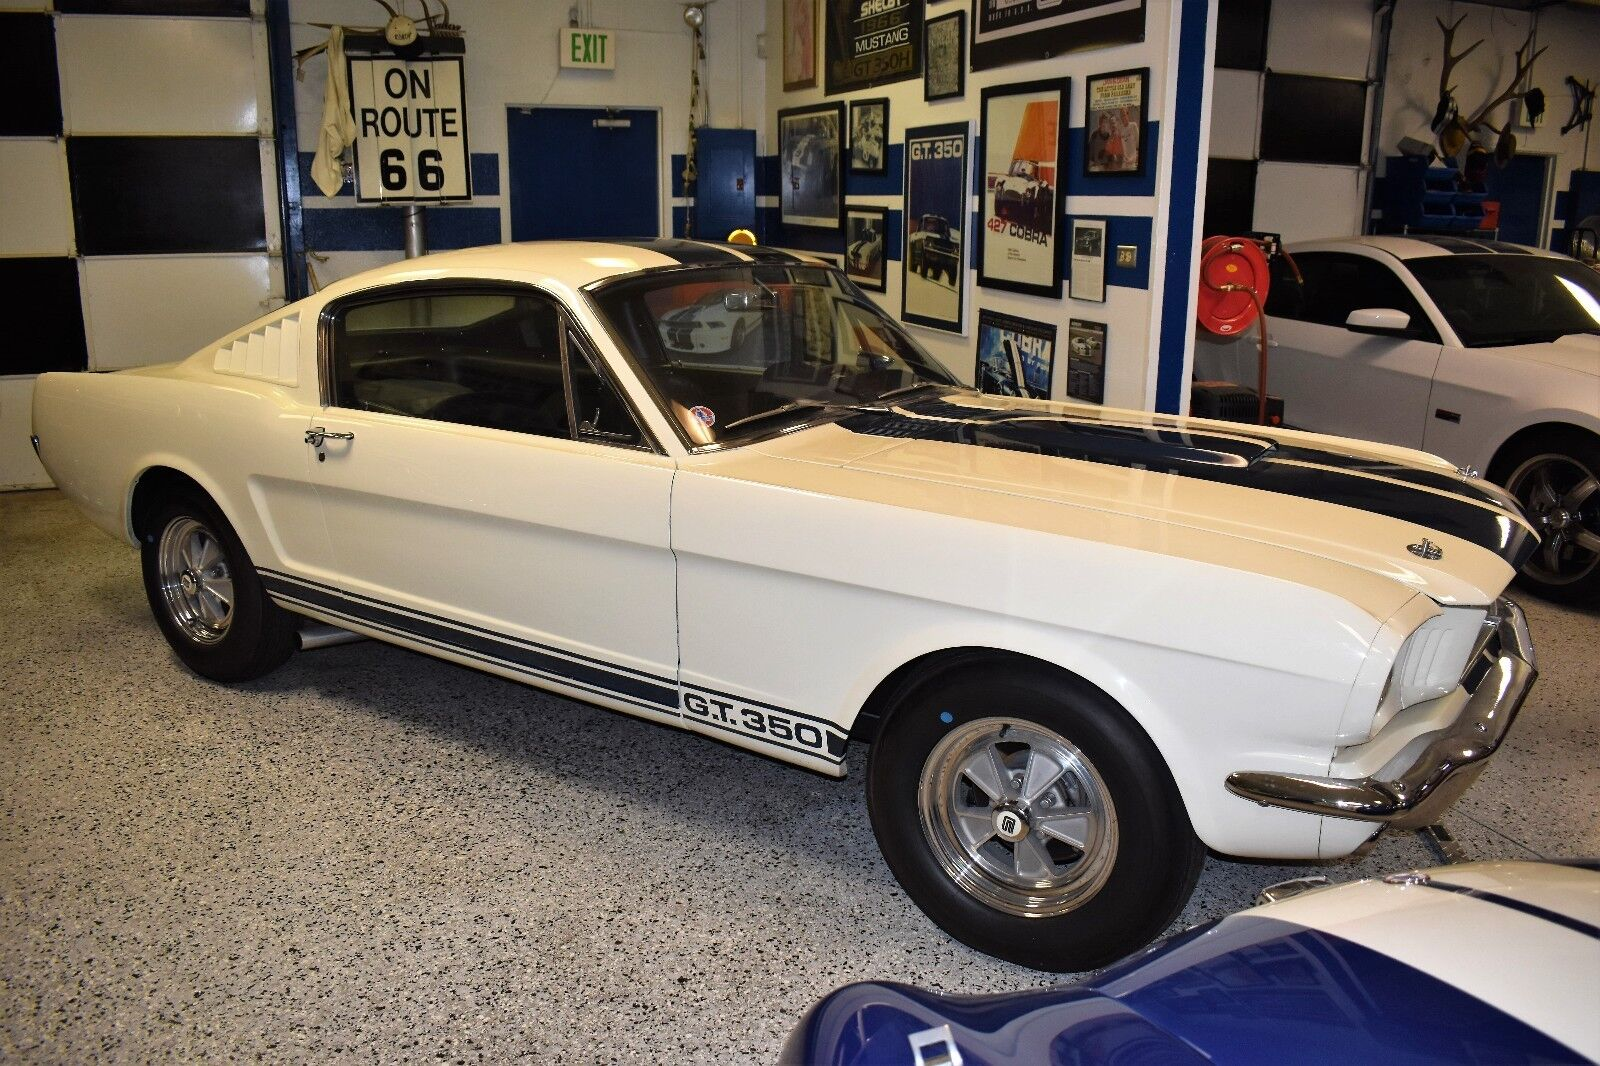 1965 Shelby Cobra GT-350 The Legend Starts Here! Heavily Documented-Private Collection Owner for 20+ year